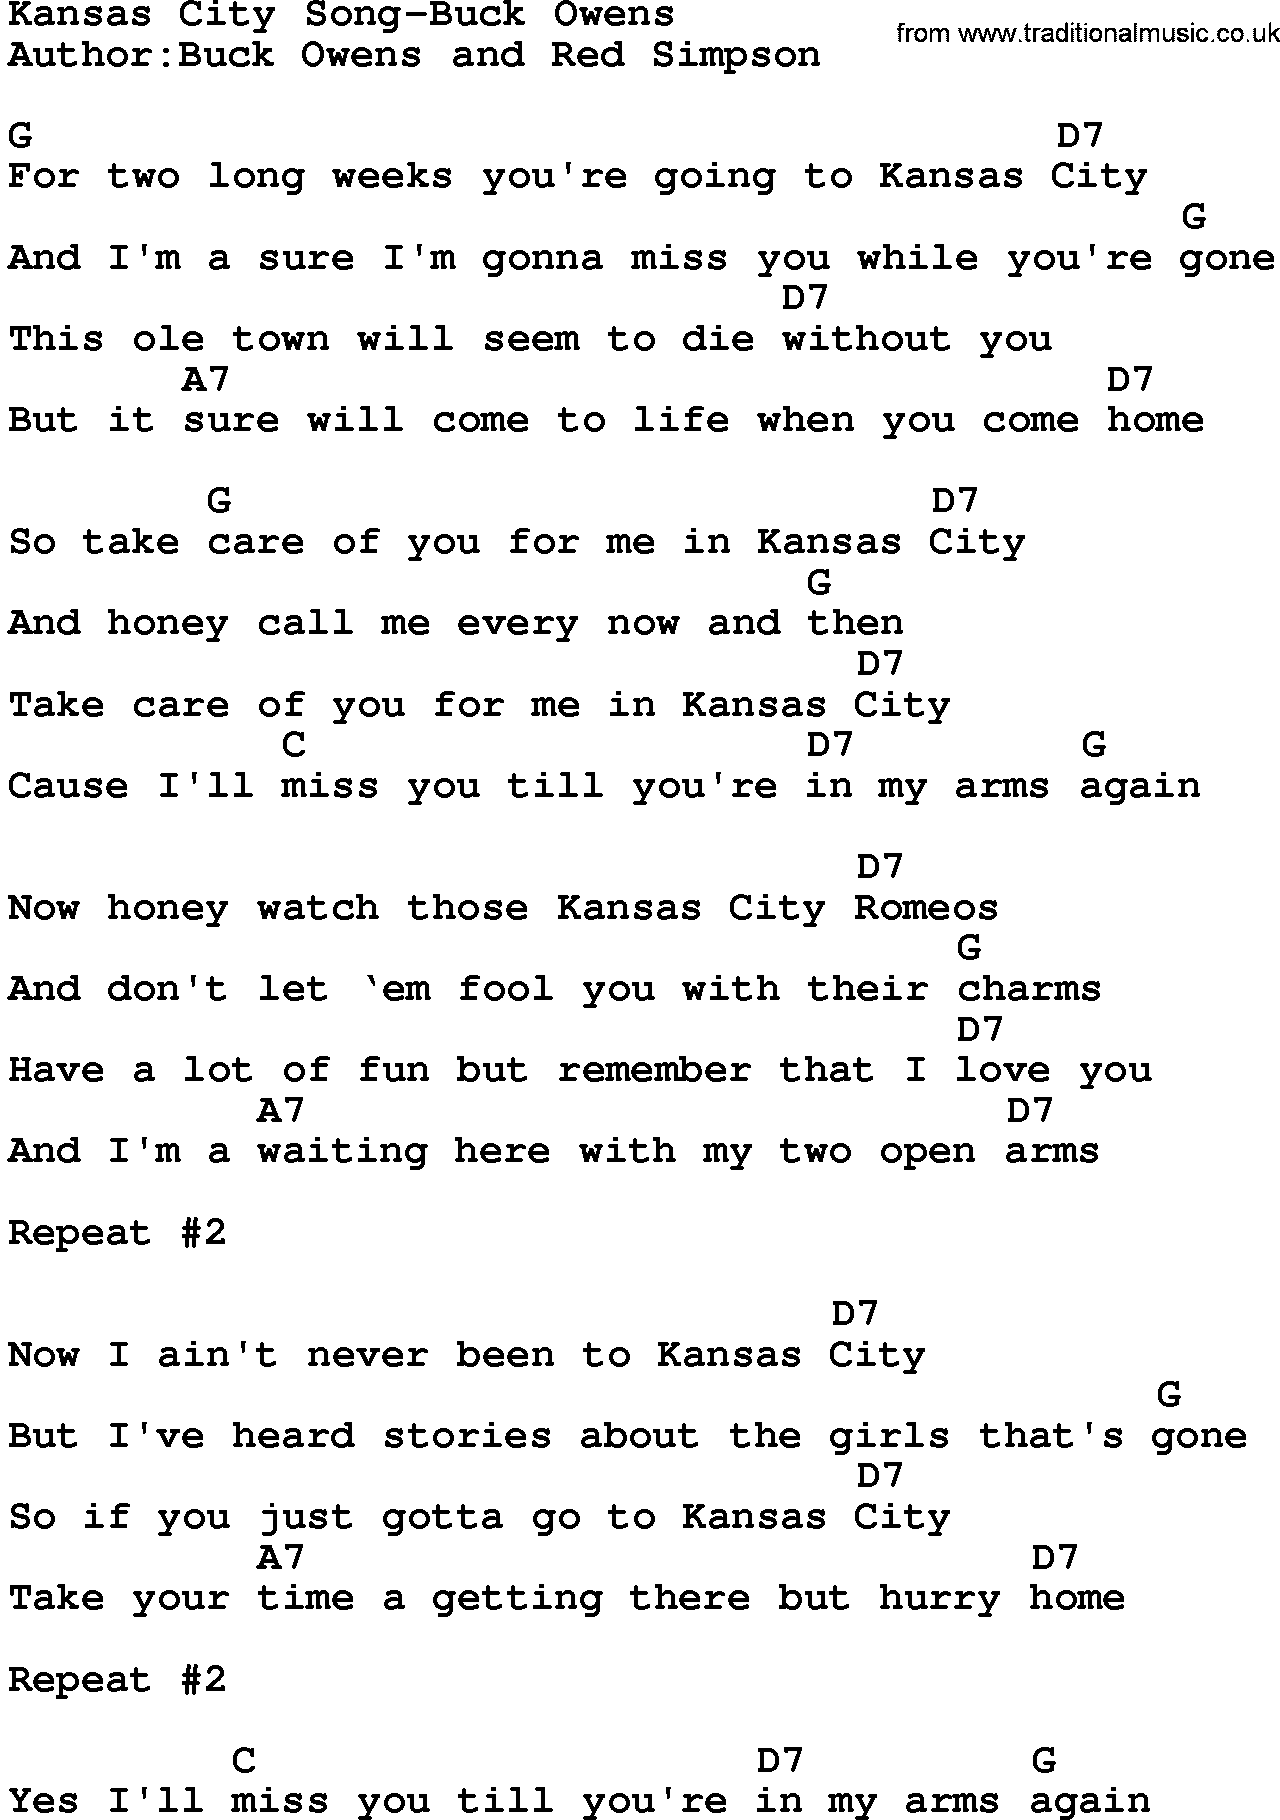 Buck owens song lyrics country music song kansas city song buck country musickansas city song buck owens lyrics and chords hexwebz Images